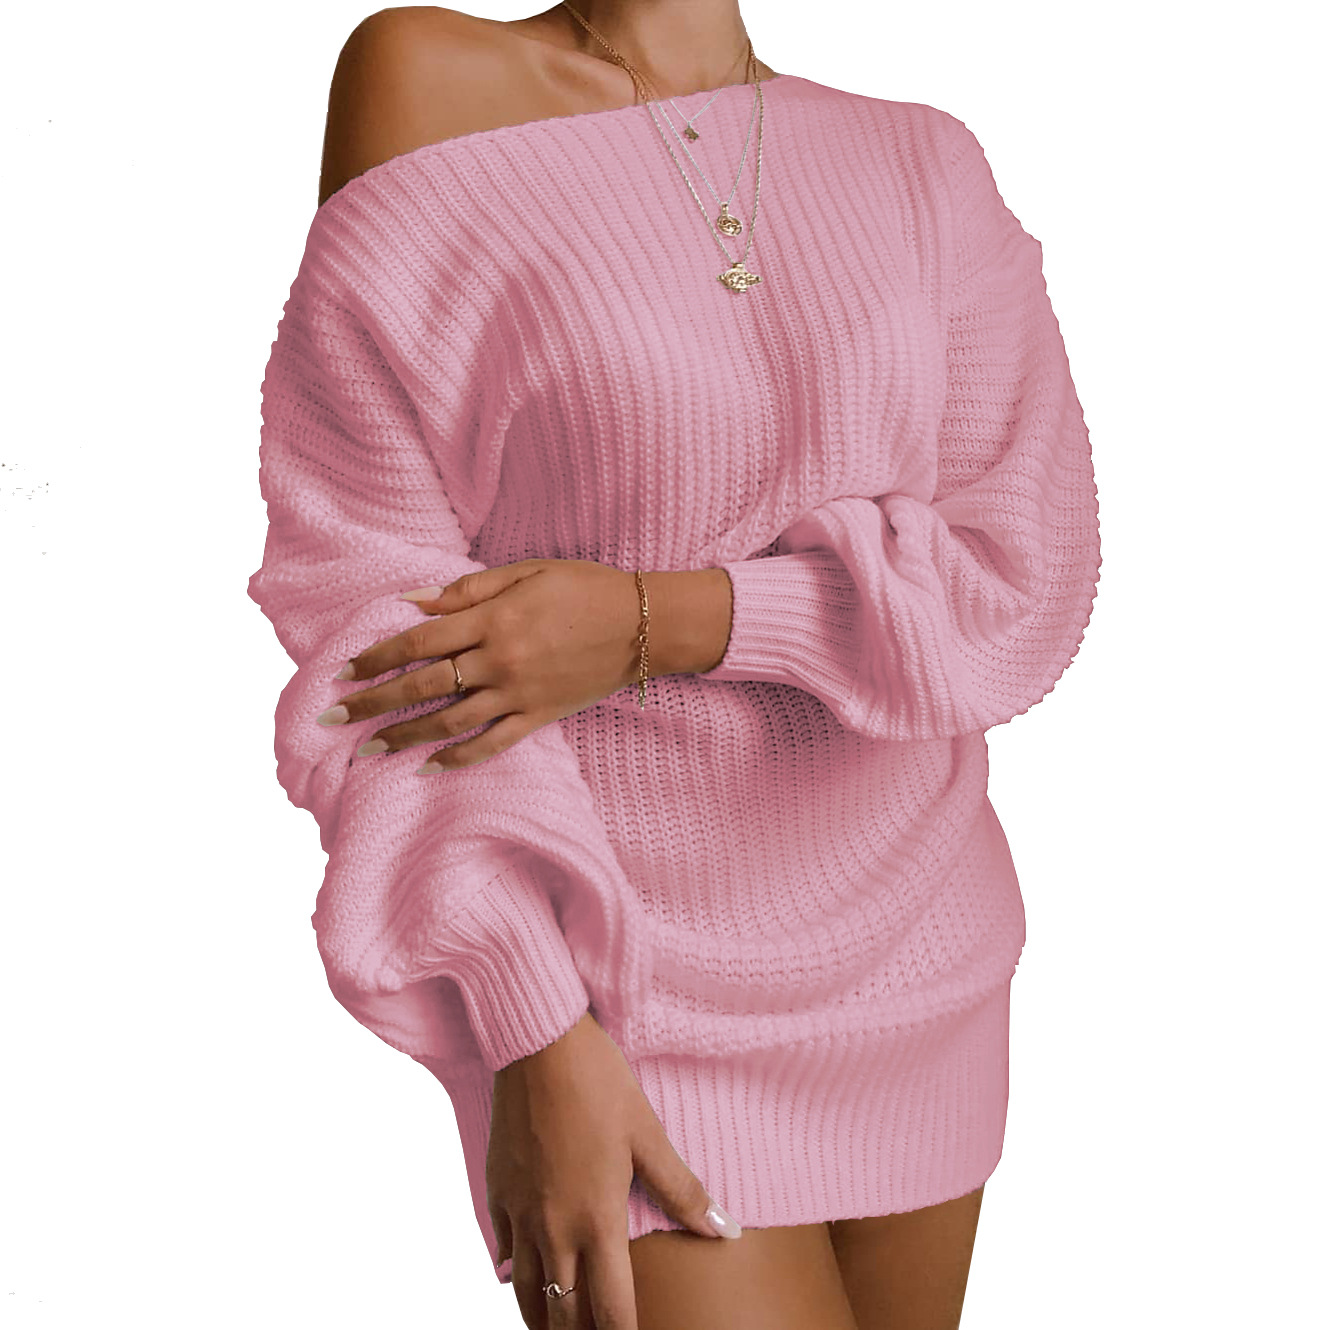 M718 High quality women winter clothing fashion off shoulder bubble sleeve loose pullover warm knit long sweaters women